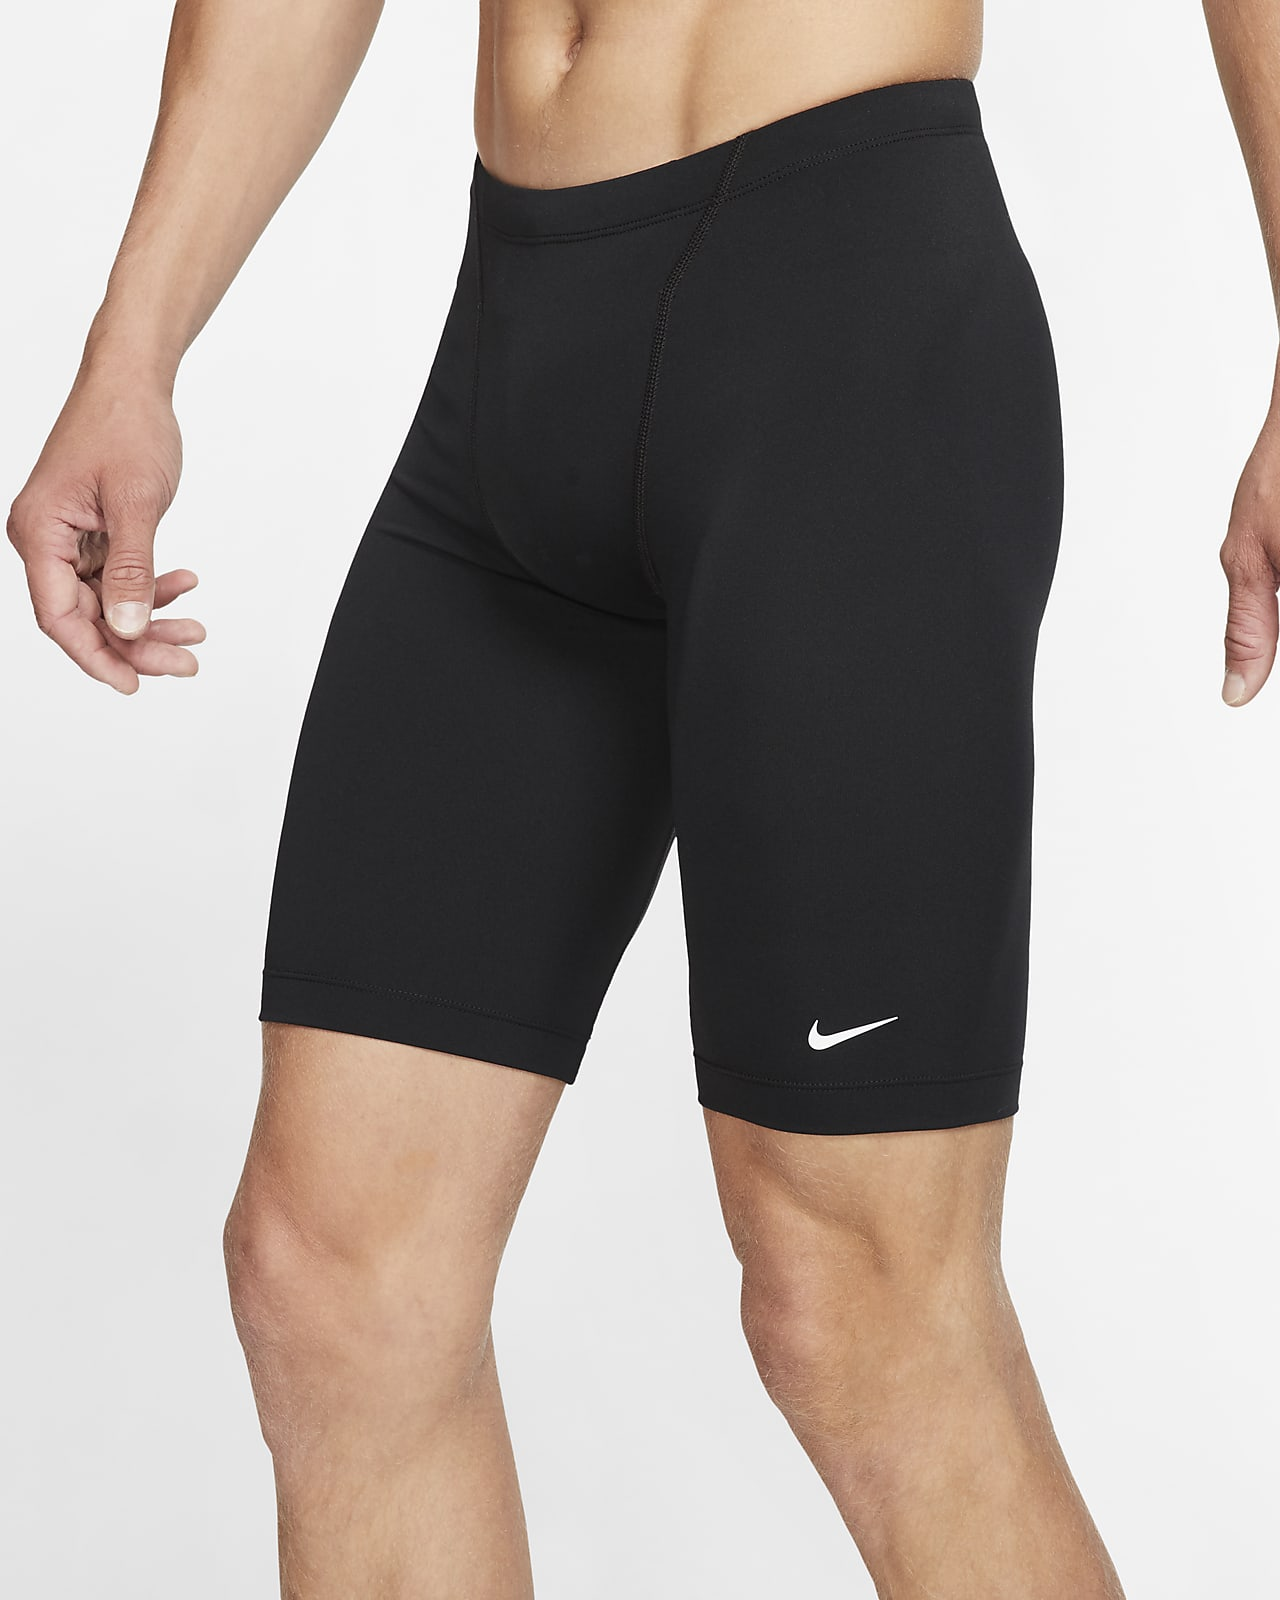 Nike Men's Square Leg Swim Jammer